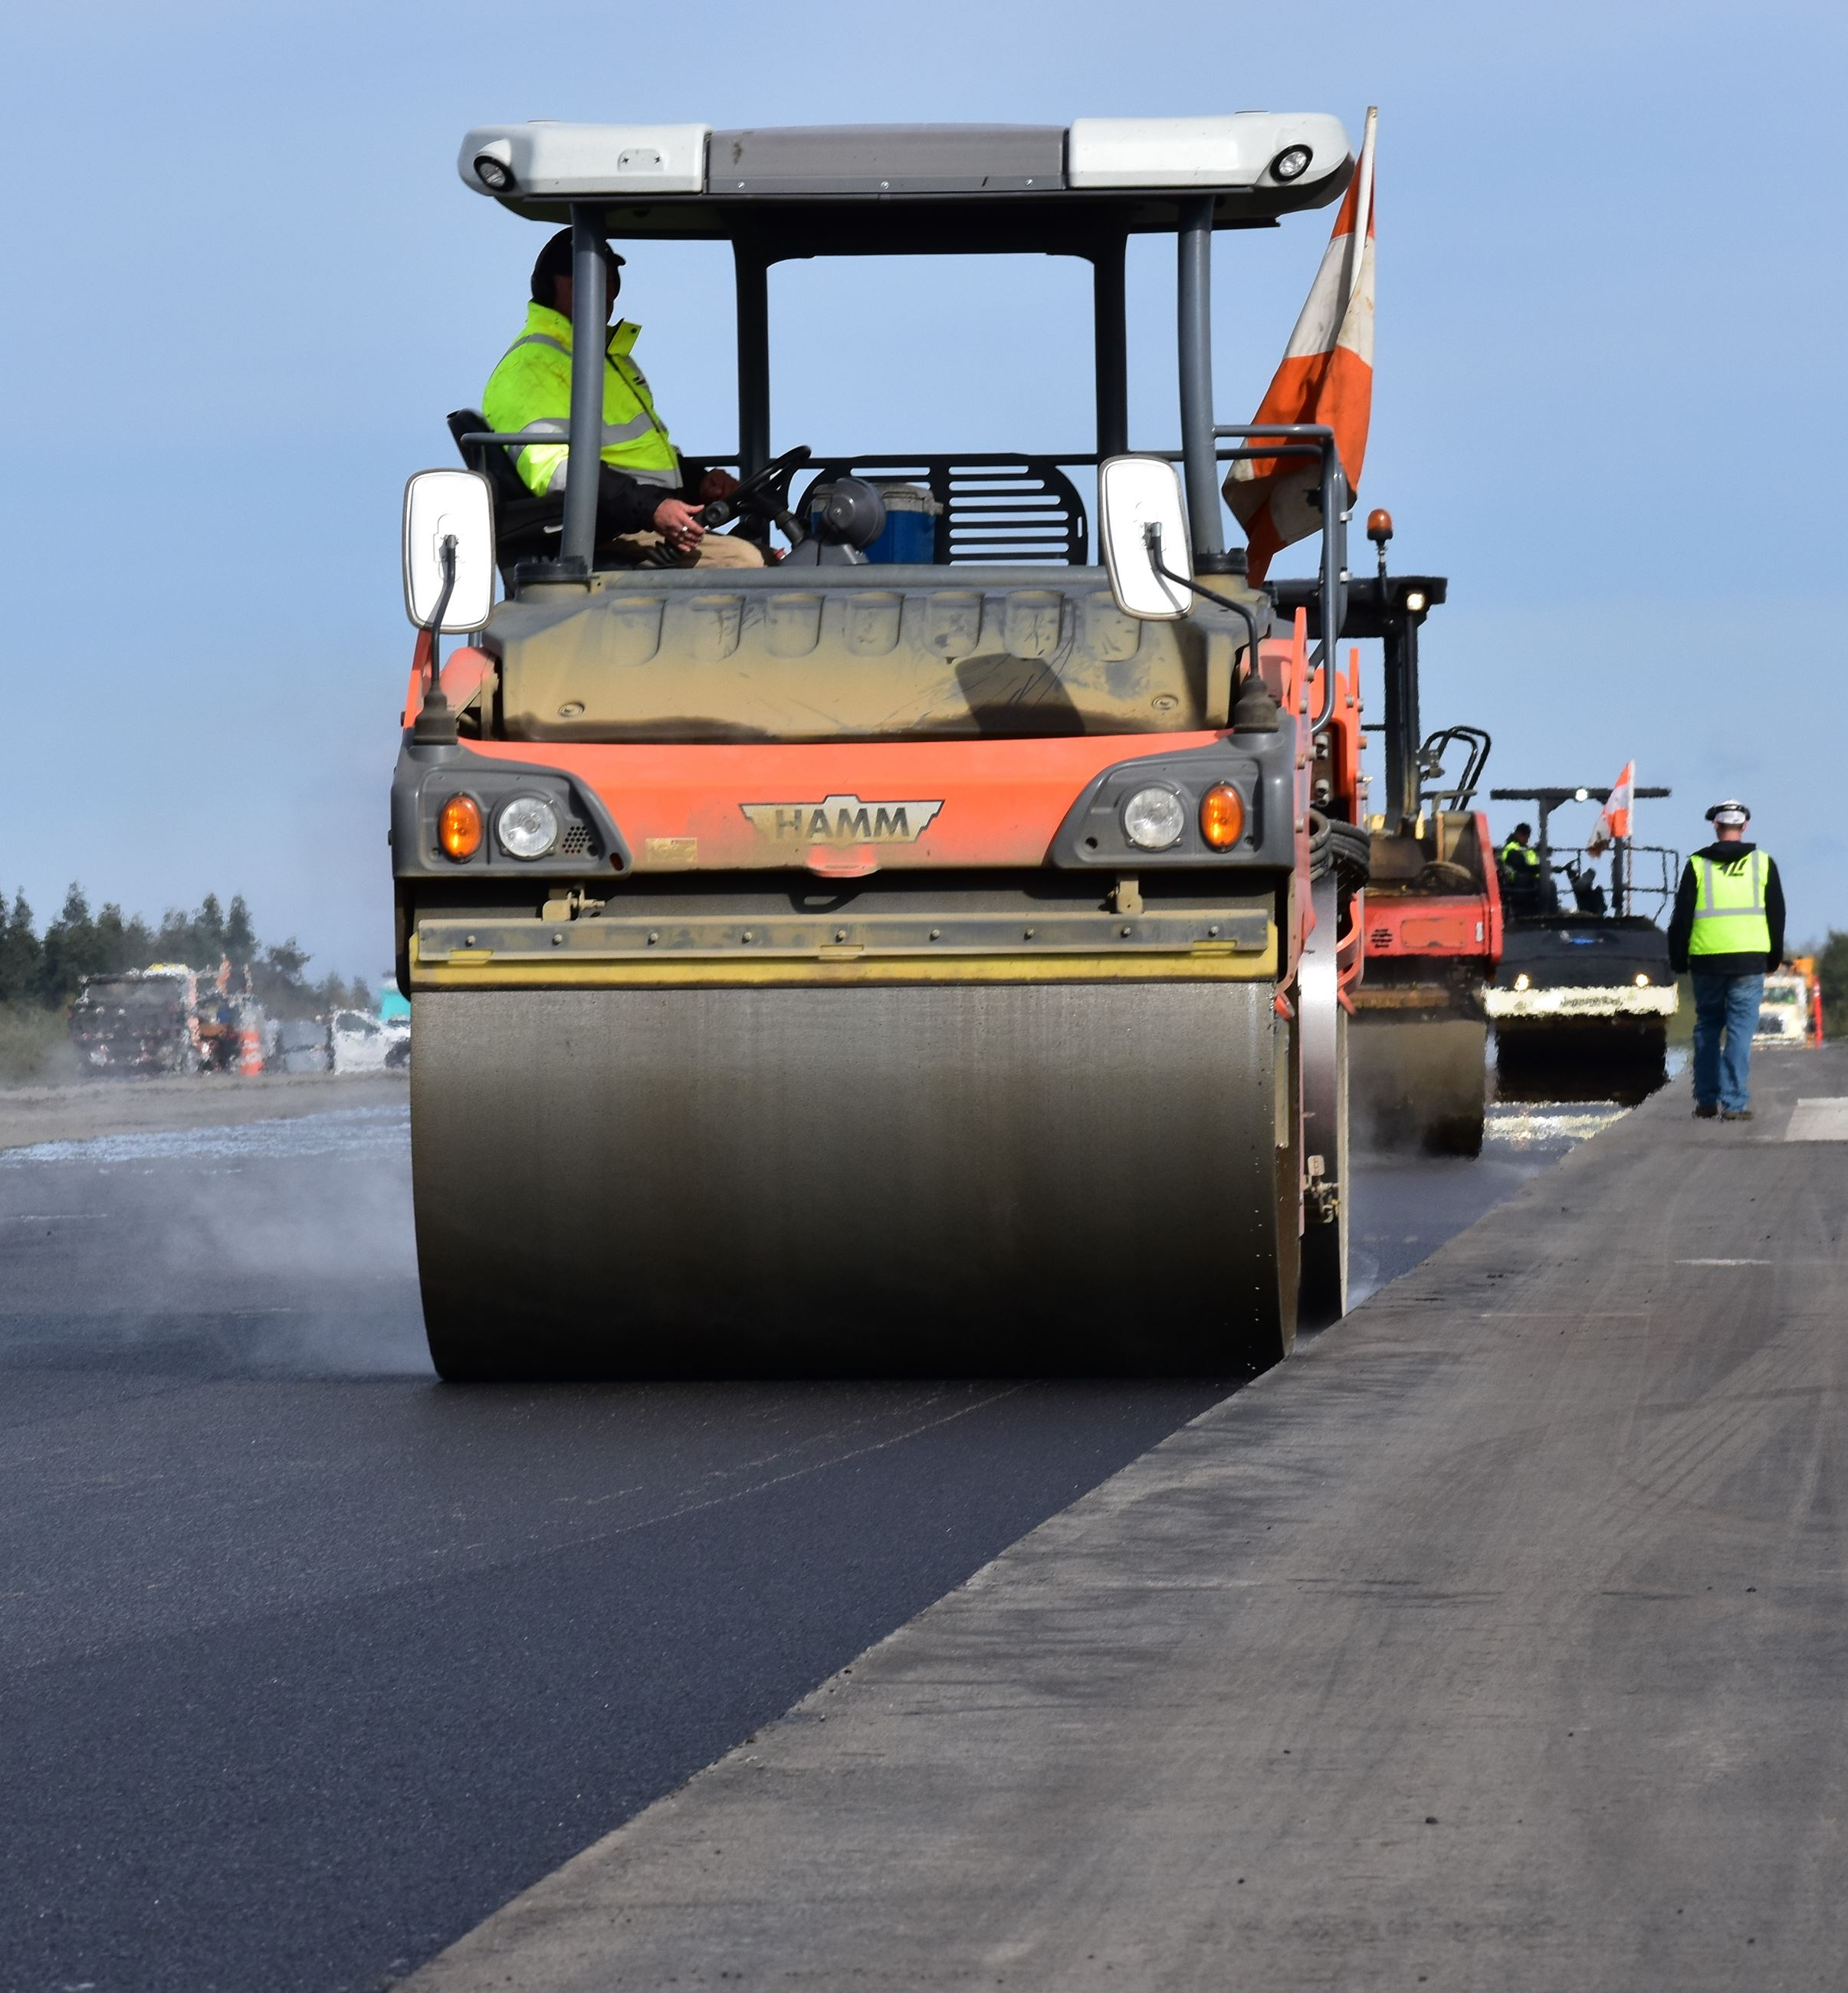 Roller compresses asphalt on runway October 3, 2018